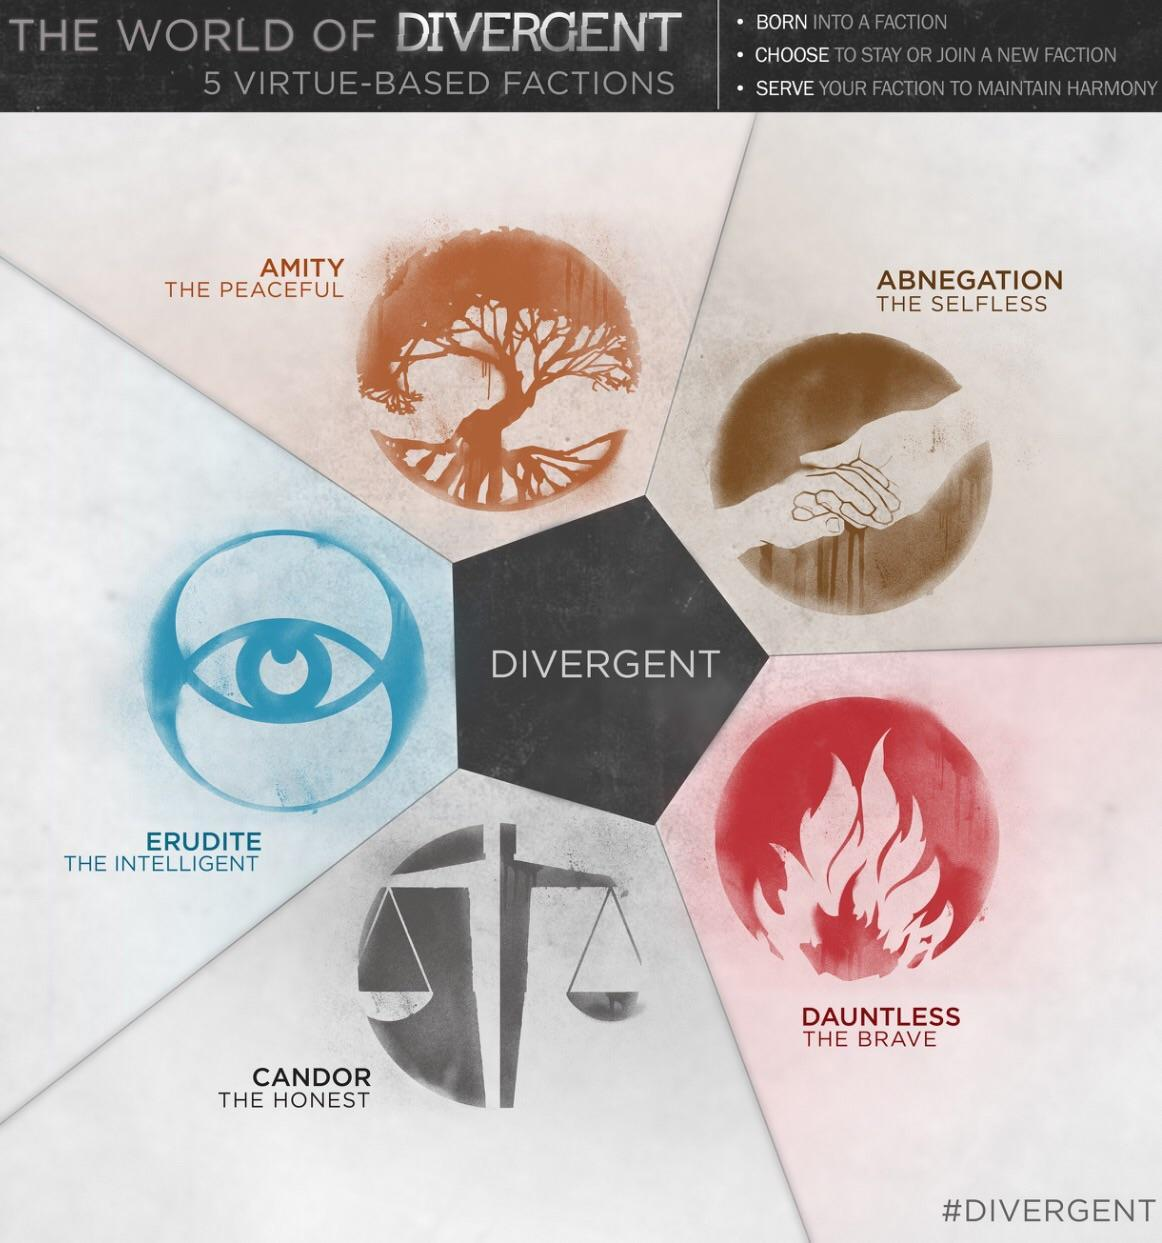 What faction are you? (2)